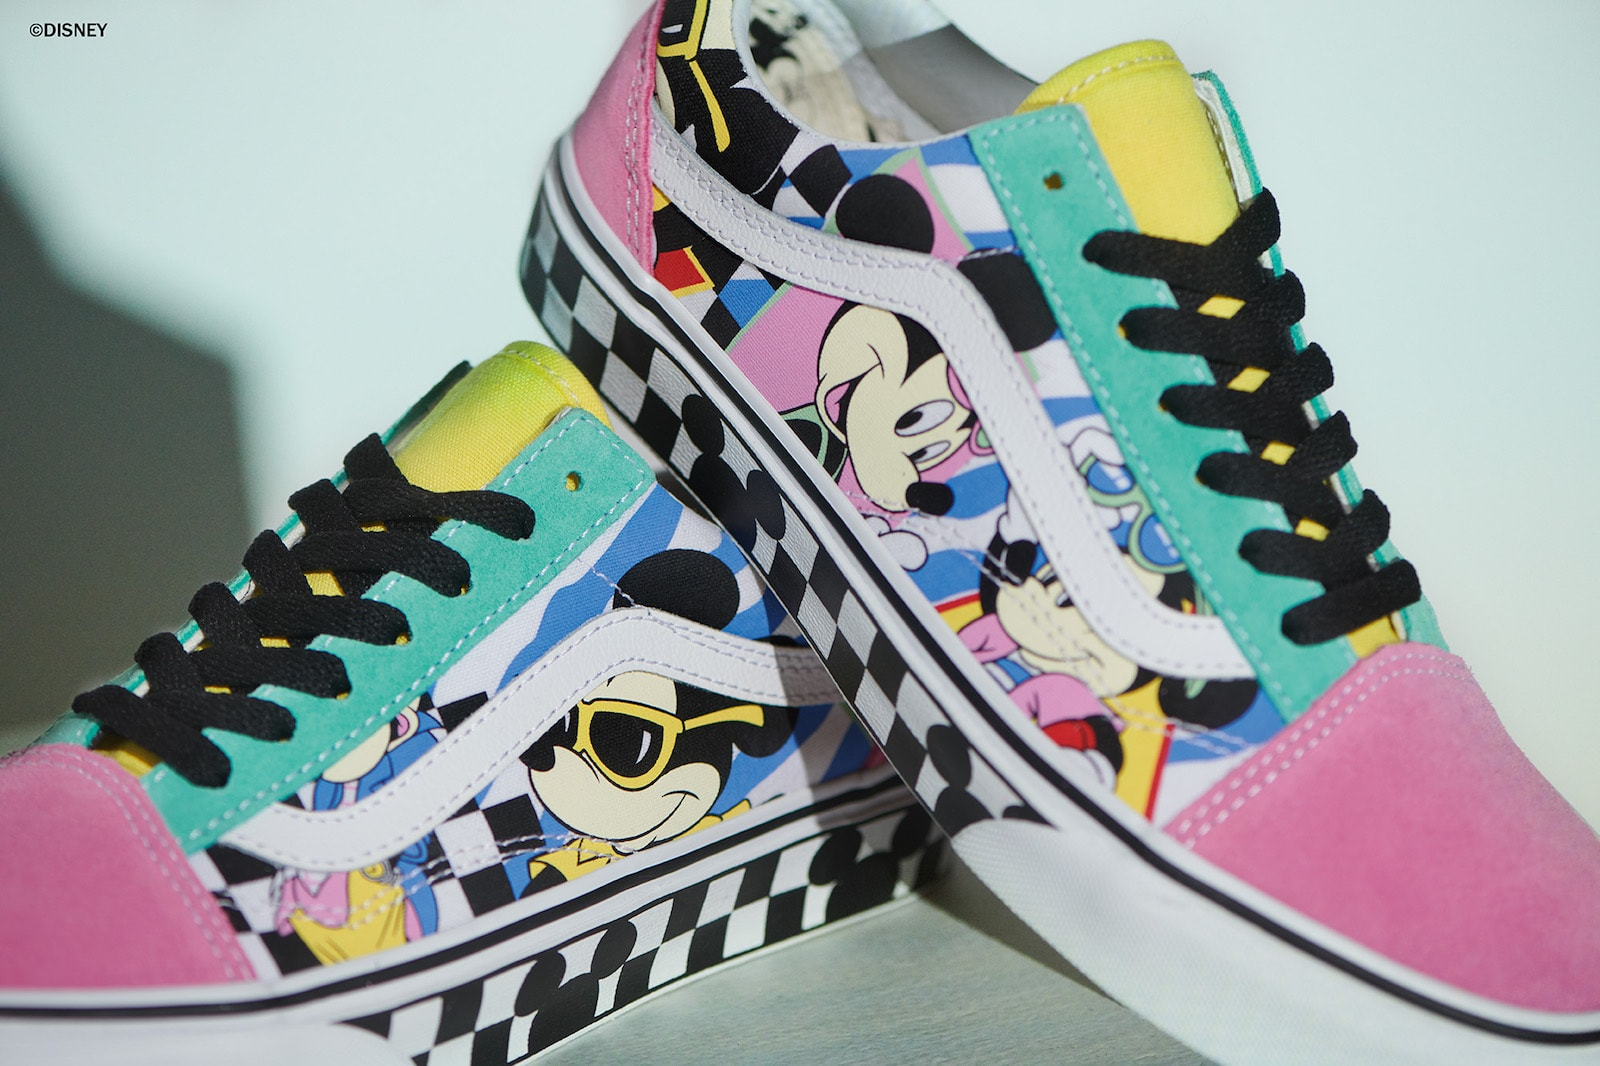 Colorful, stylish Mickey Mouse sneakers from the Vans x Disney Collection